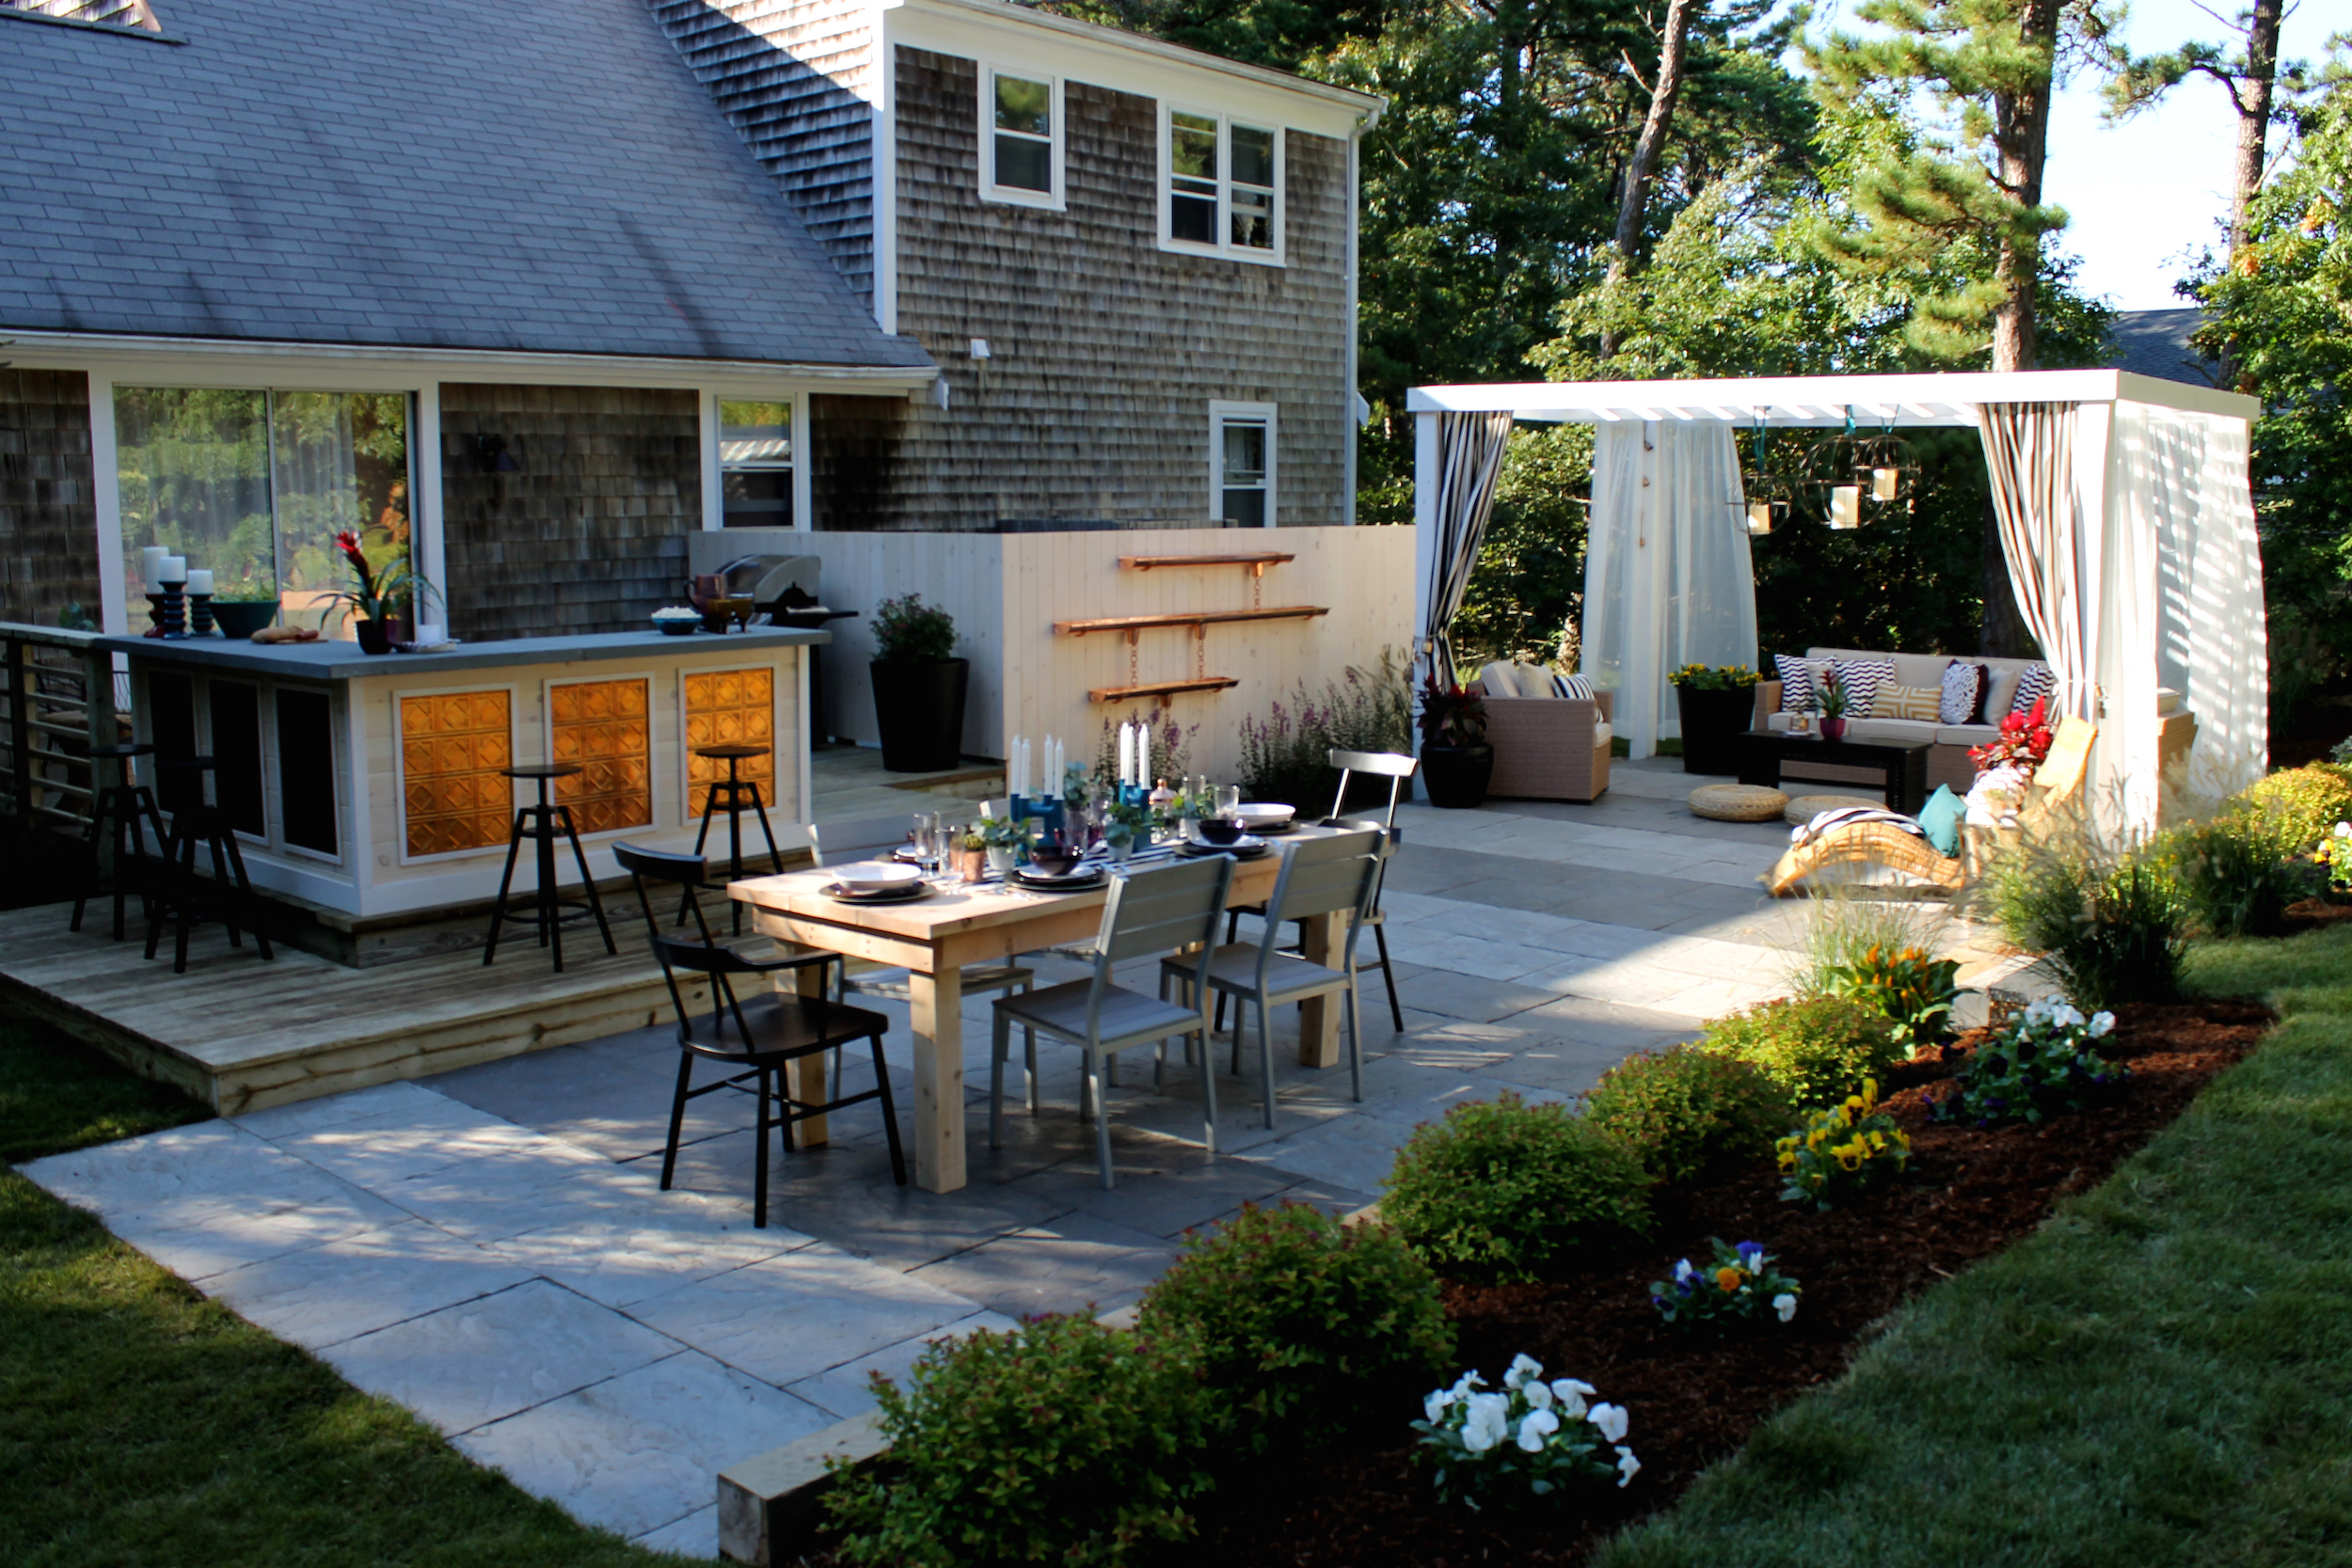 17 Landscaping Ideas For A Low-Maintenance Yard on Backyard Landscaping Near Me id=75237